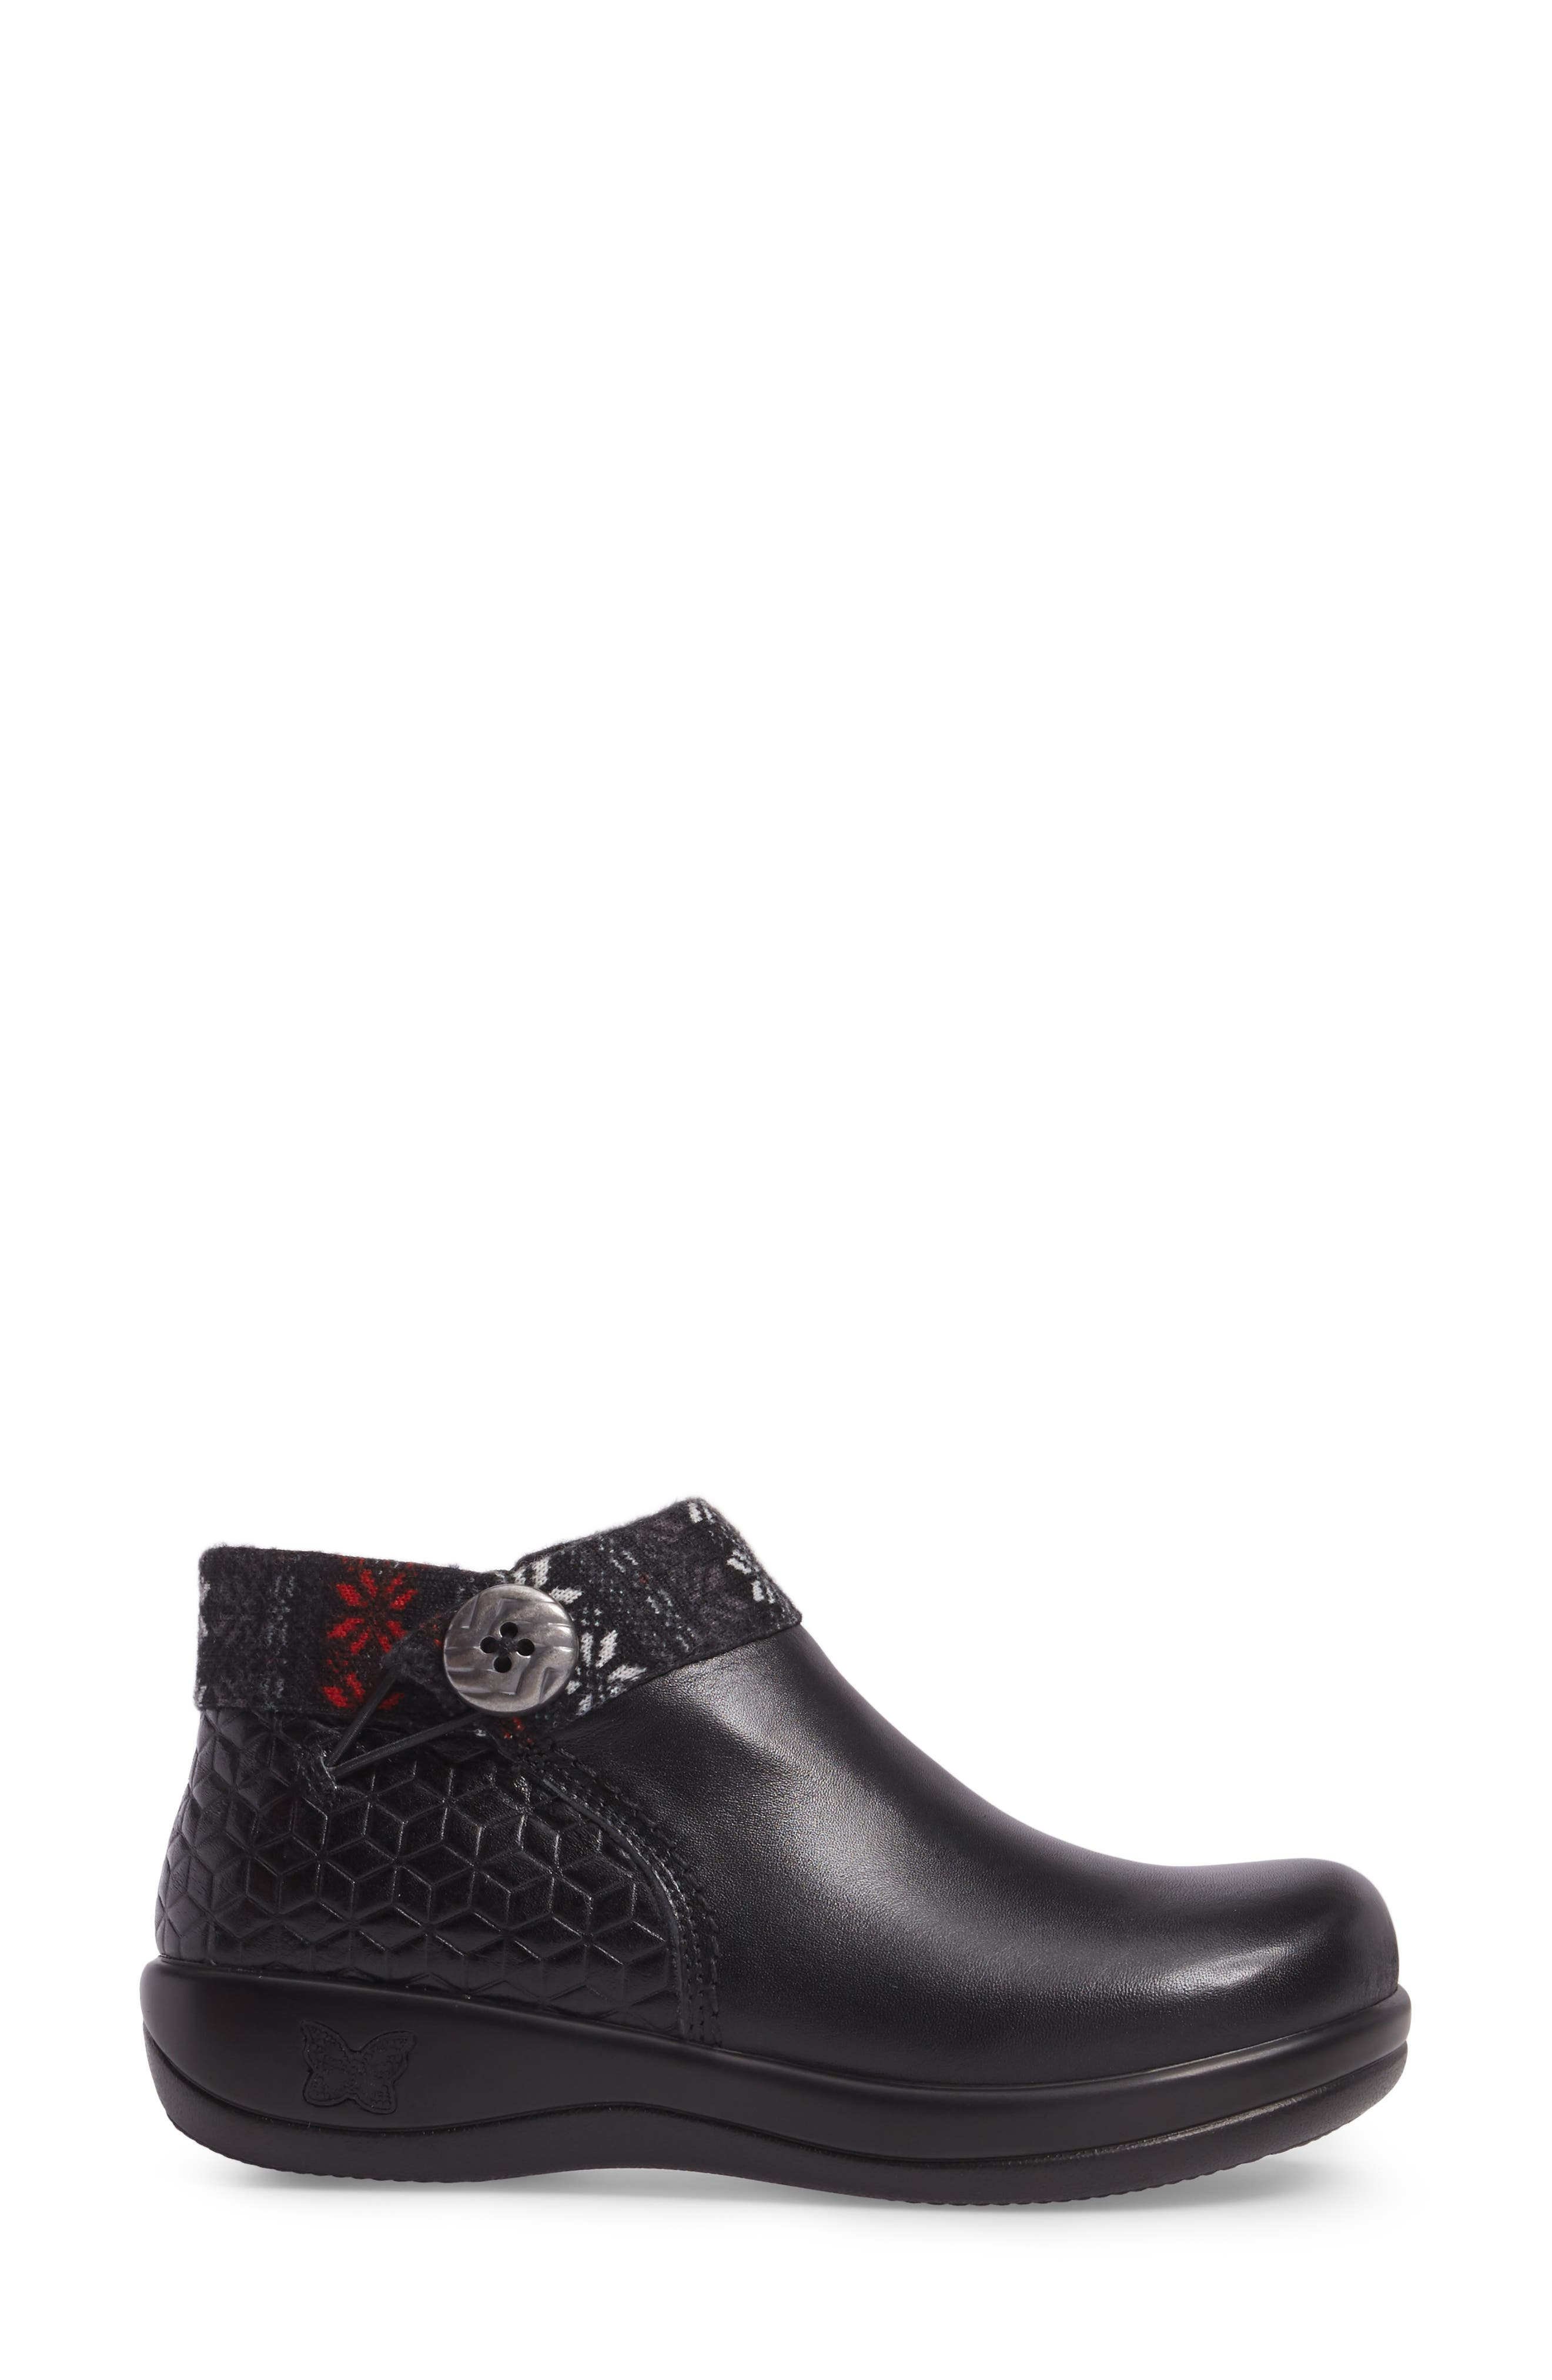 Sitka Knit Collar Bootie,                             Alternate thumbnail 3, color,                             002